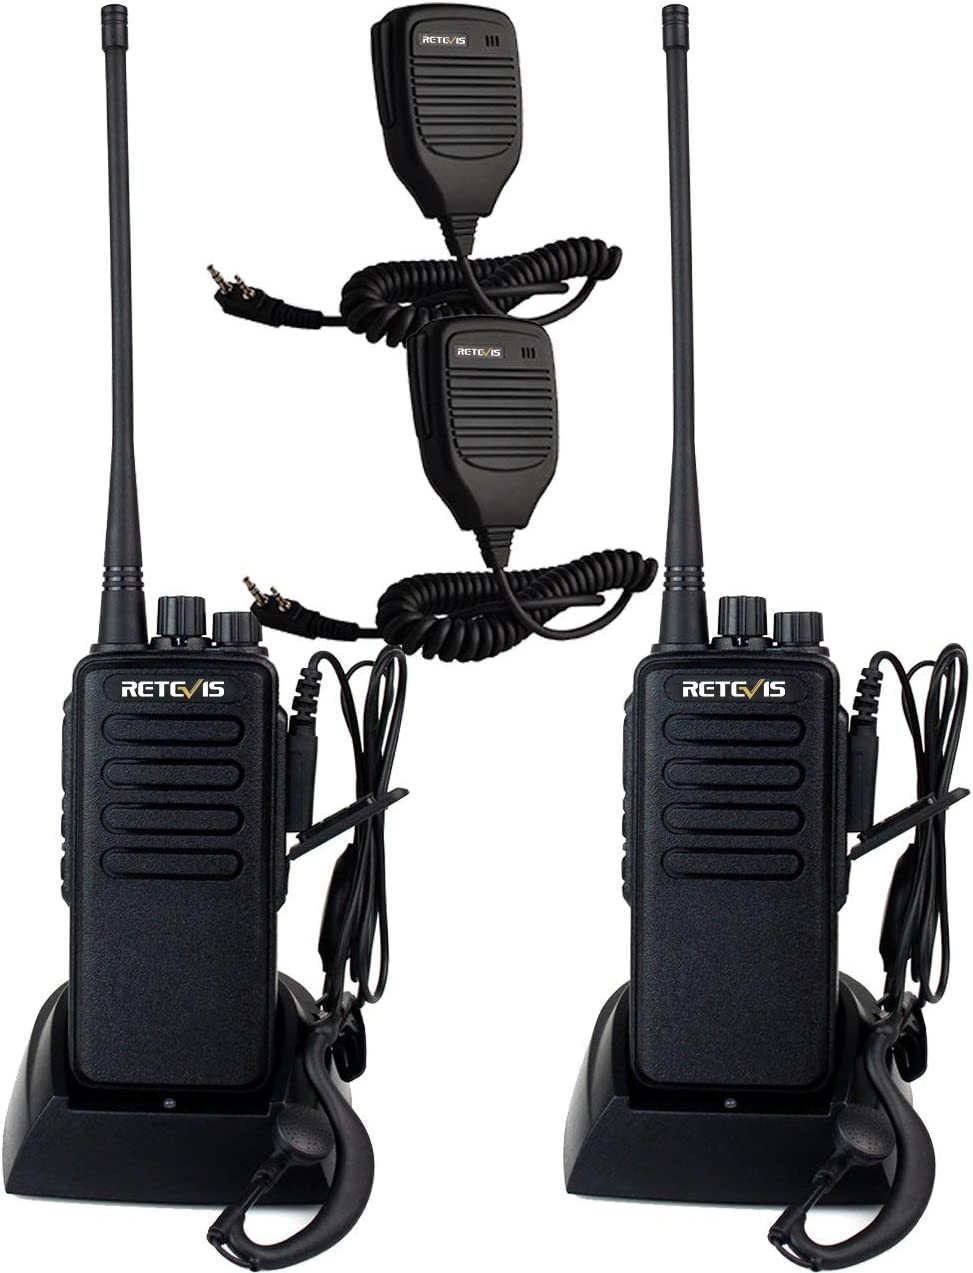 2* Retevis RT1 Walkie Talkies UHF400~520MHz 10W 3000mAh Scan VOX 2Way Radios US